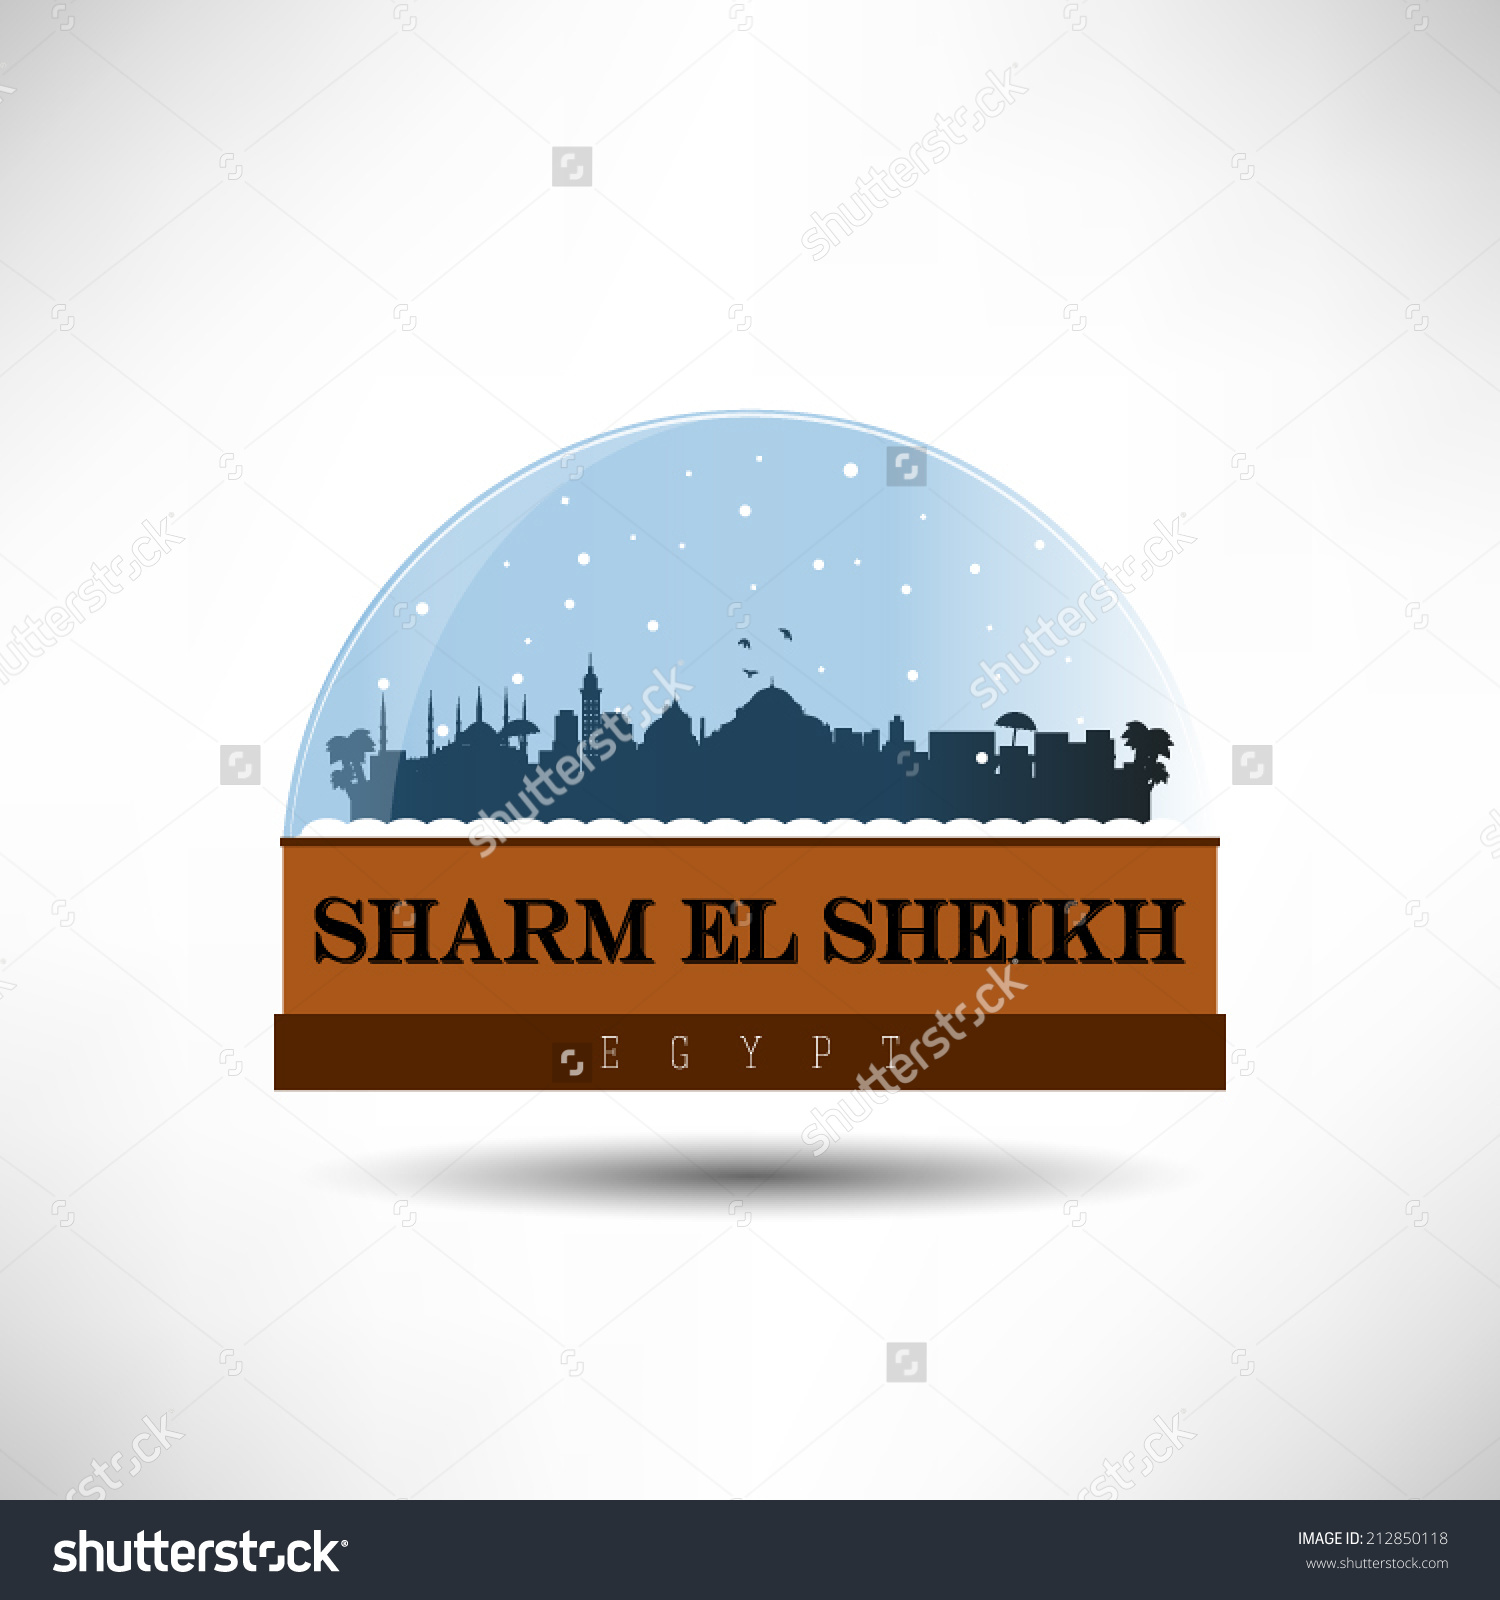 Sharm El Sheikh Egypt City Skyline Stock Vector 212850118.